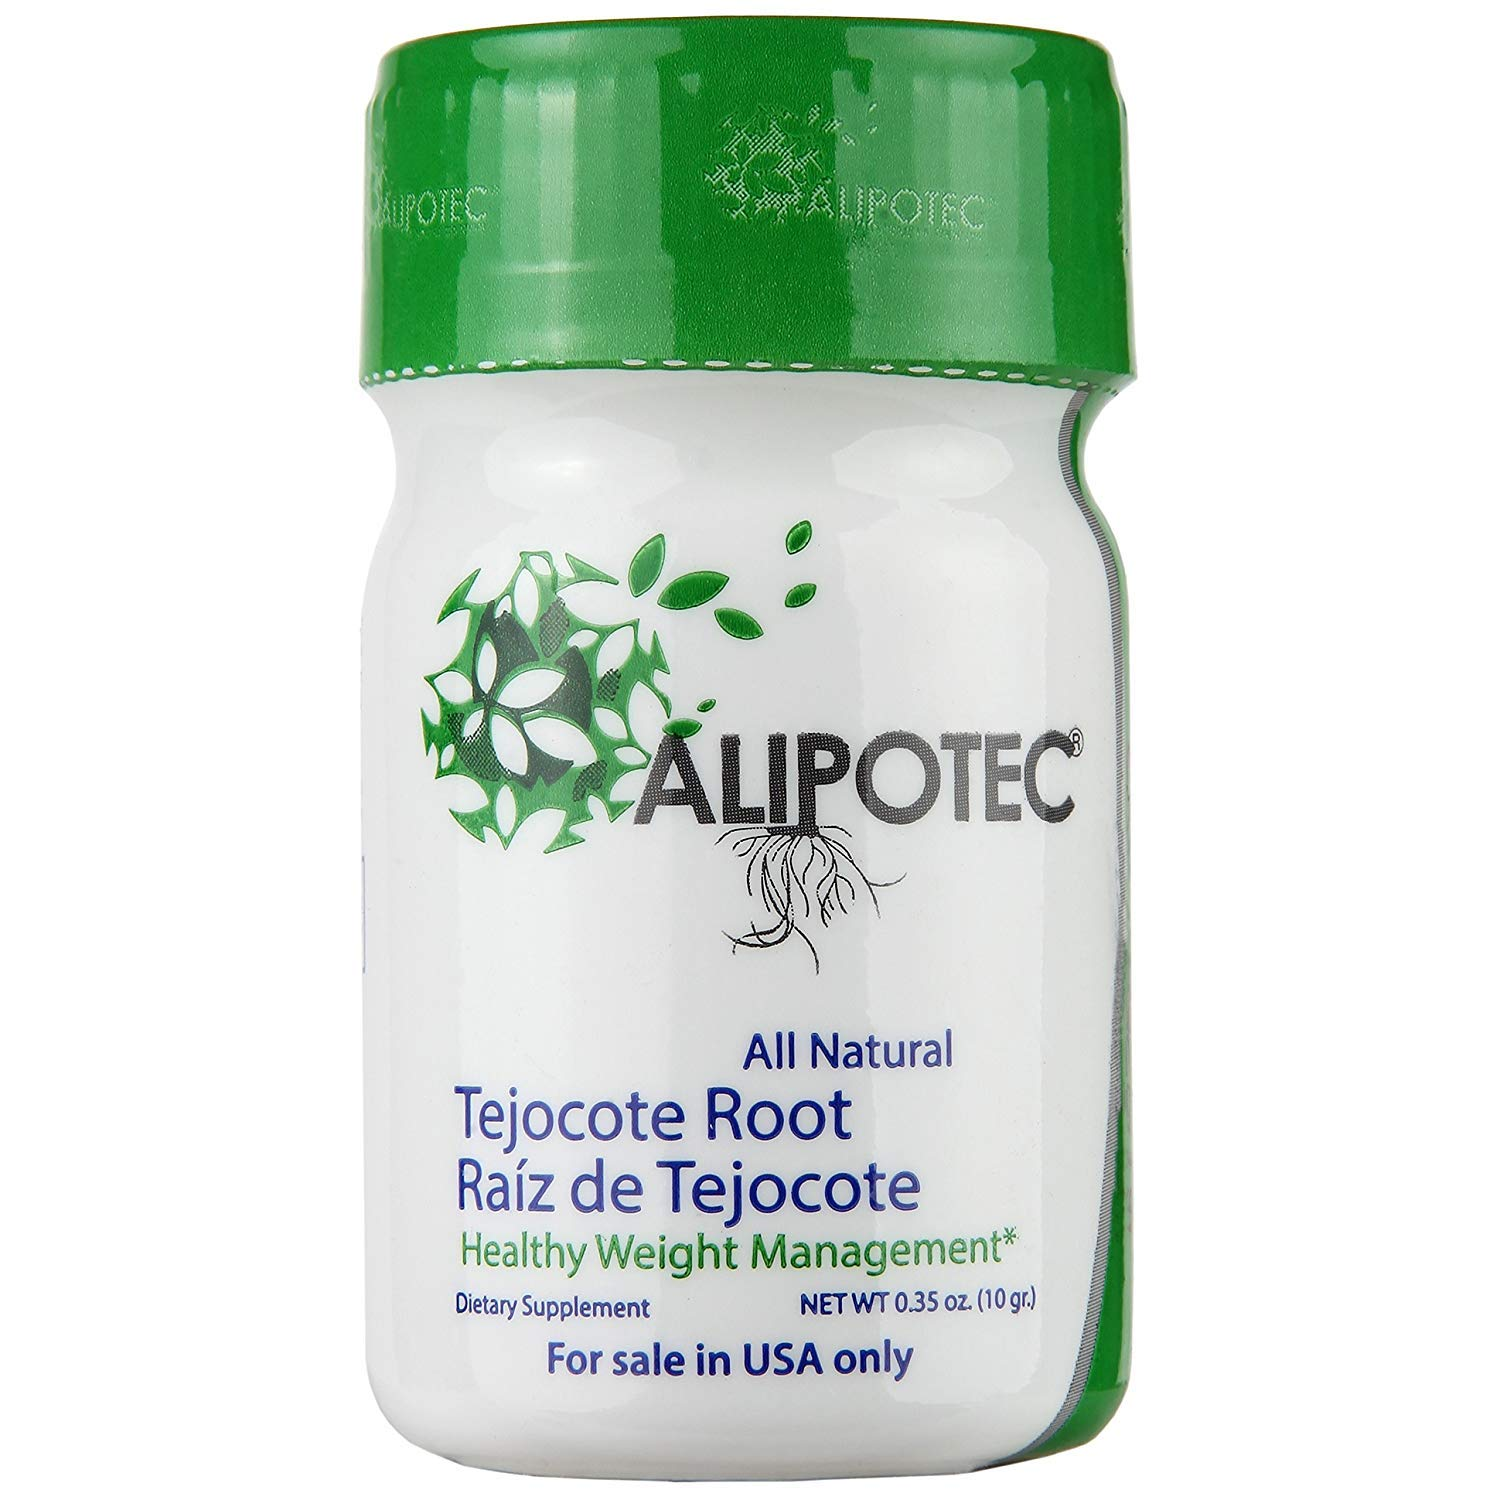 Original Alipotec Tejocote Root Treatment - 1 Bottle (3 Month Treatment) - Most Popular, All-Natural Weight Loss Supplement in Mexico - Now with Authenticity Sticker to Ensure 100% Authentic Product